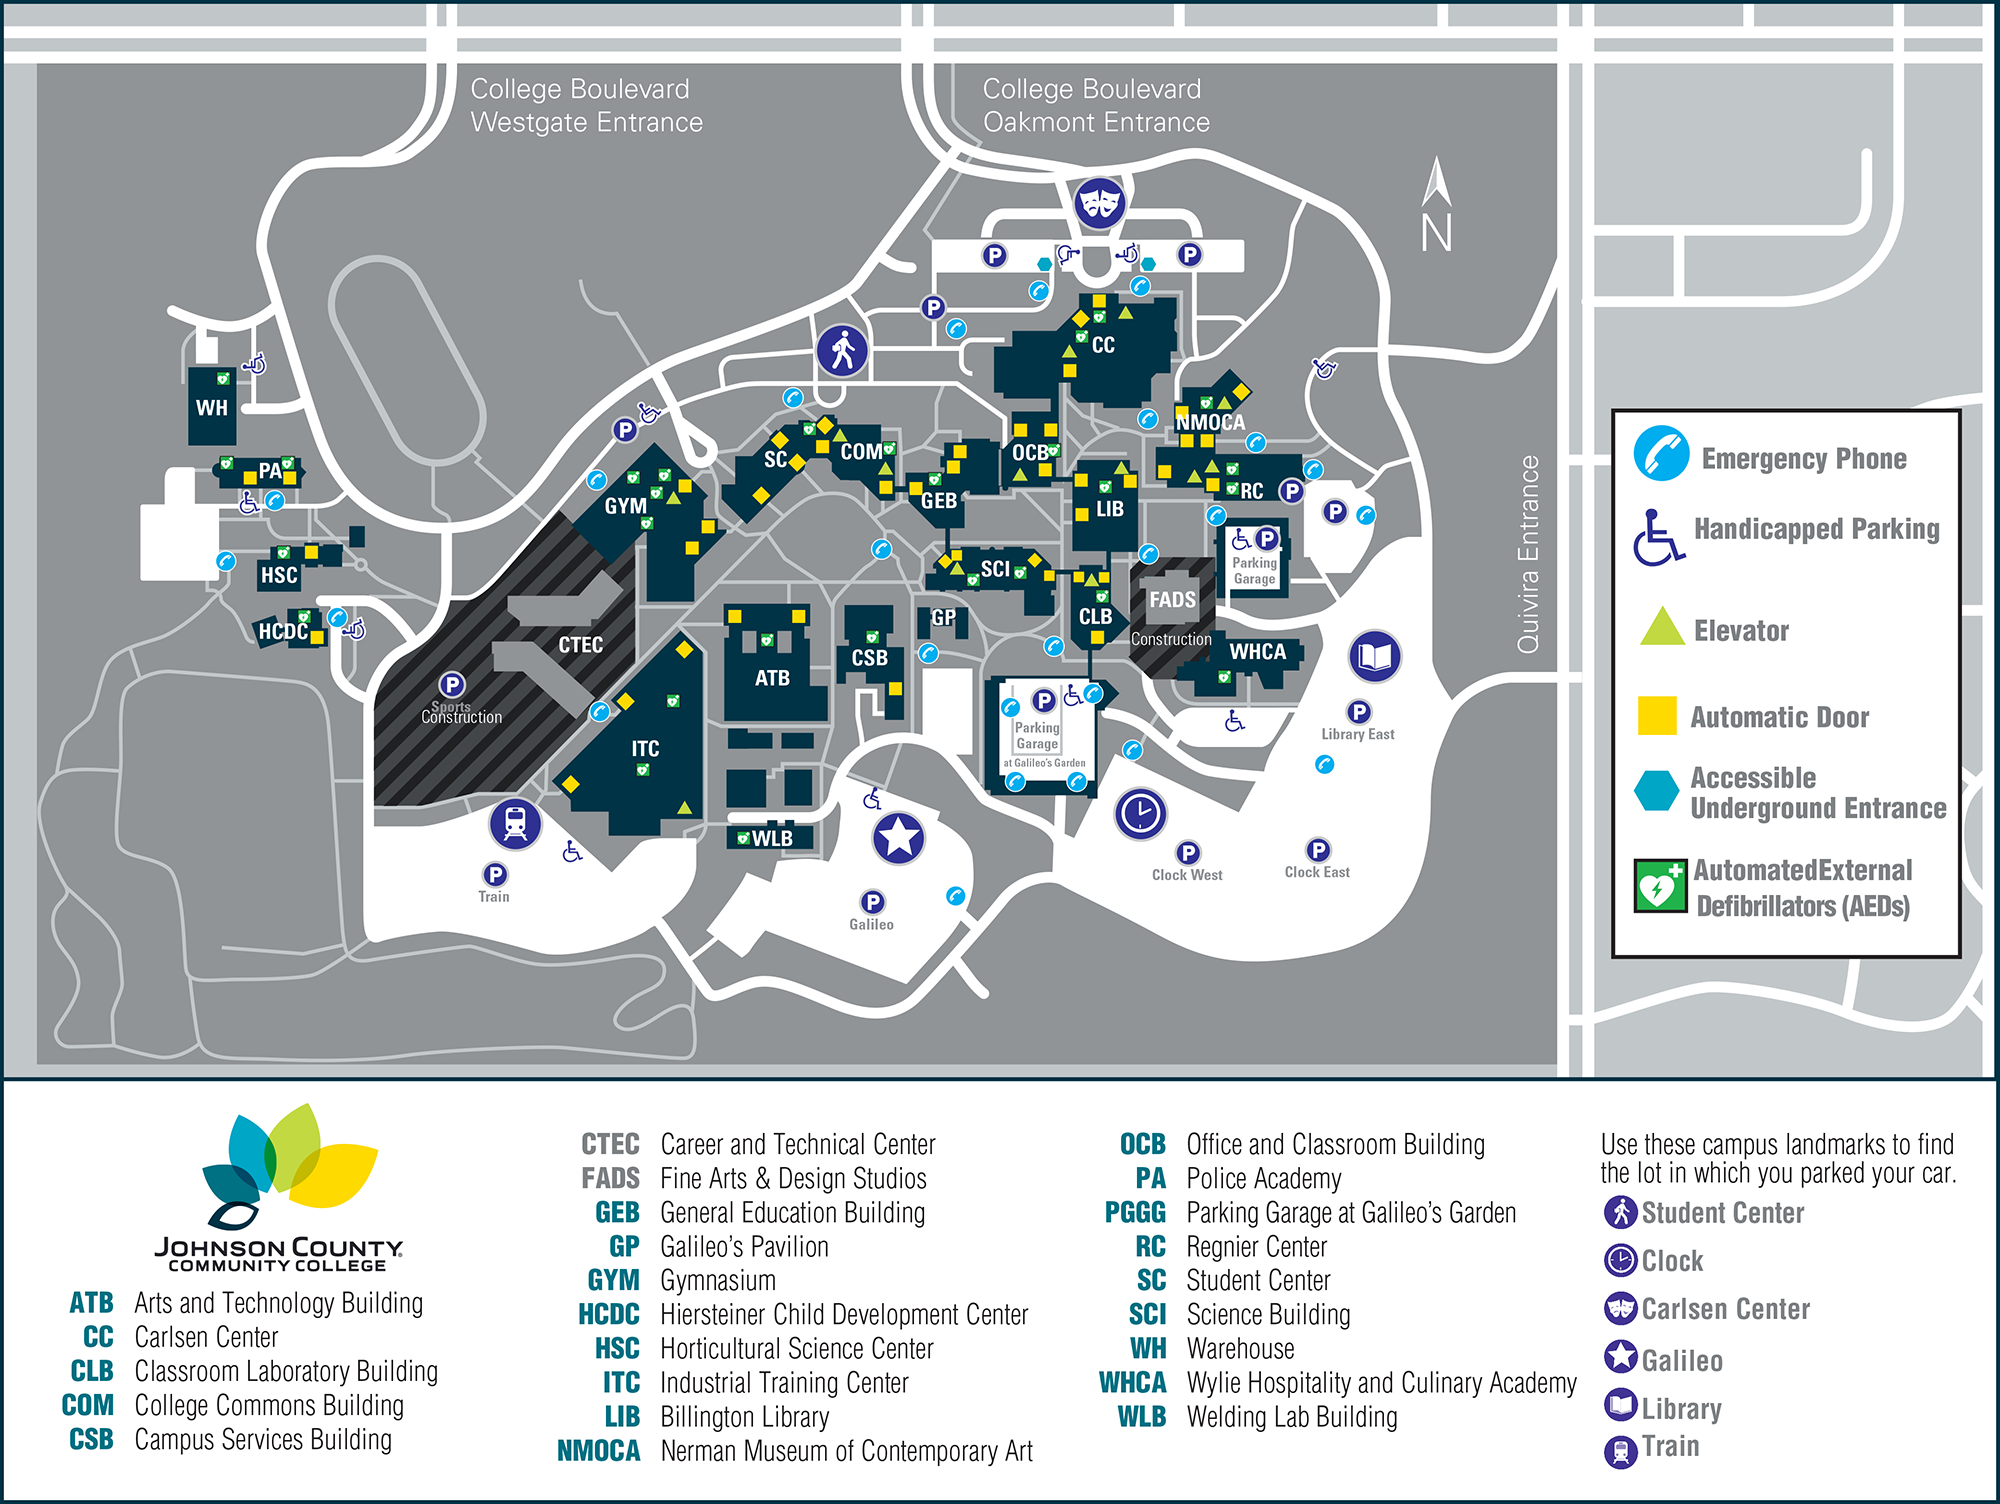 Union County College Campus Map.Johnson County Community College Campus Map